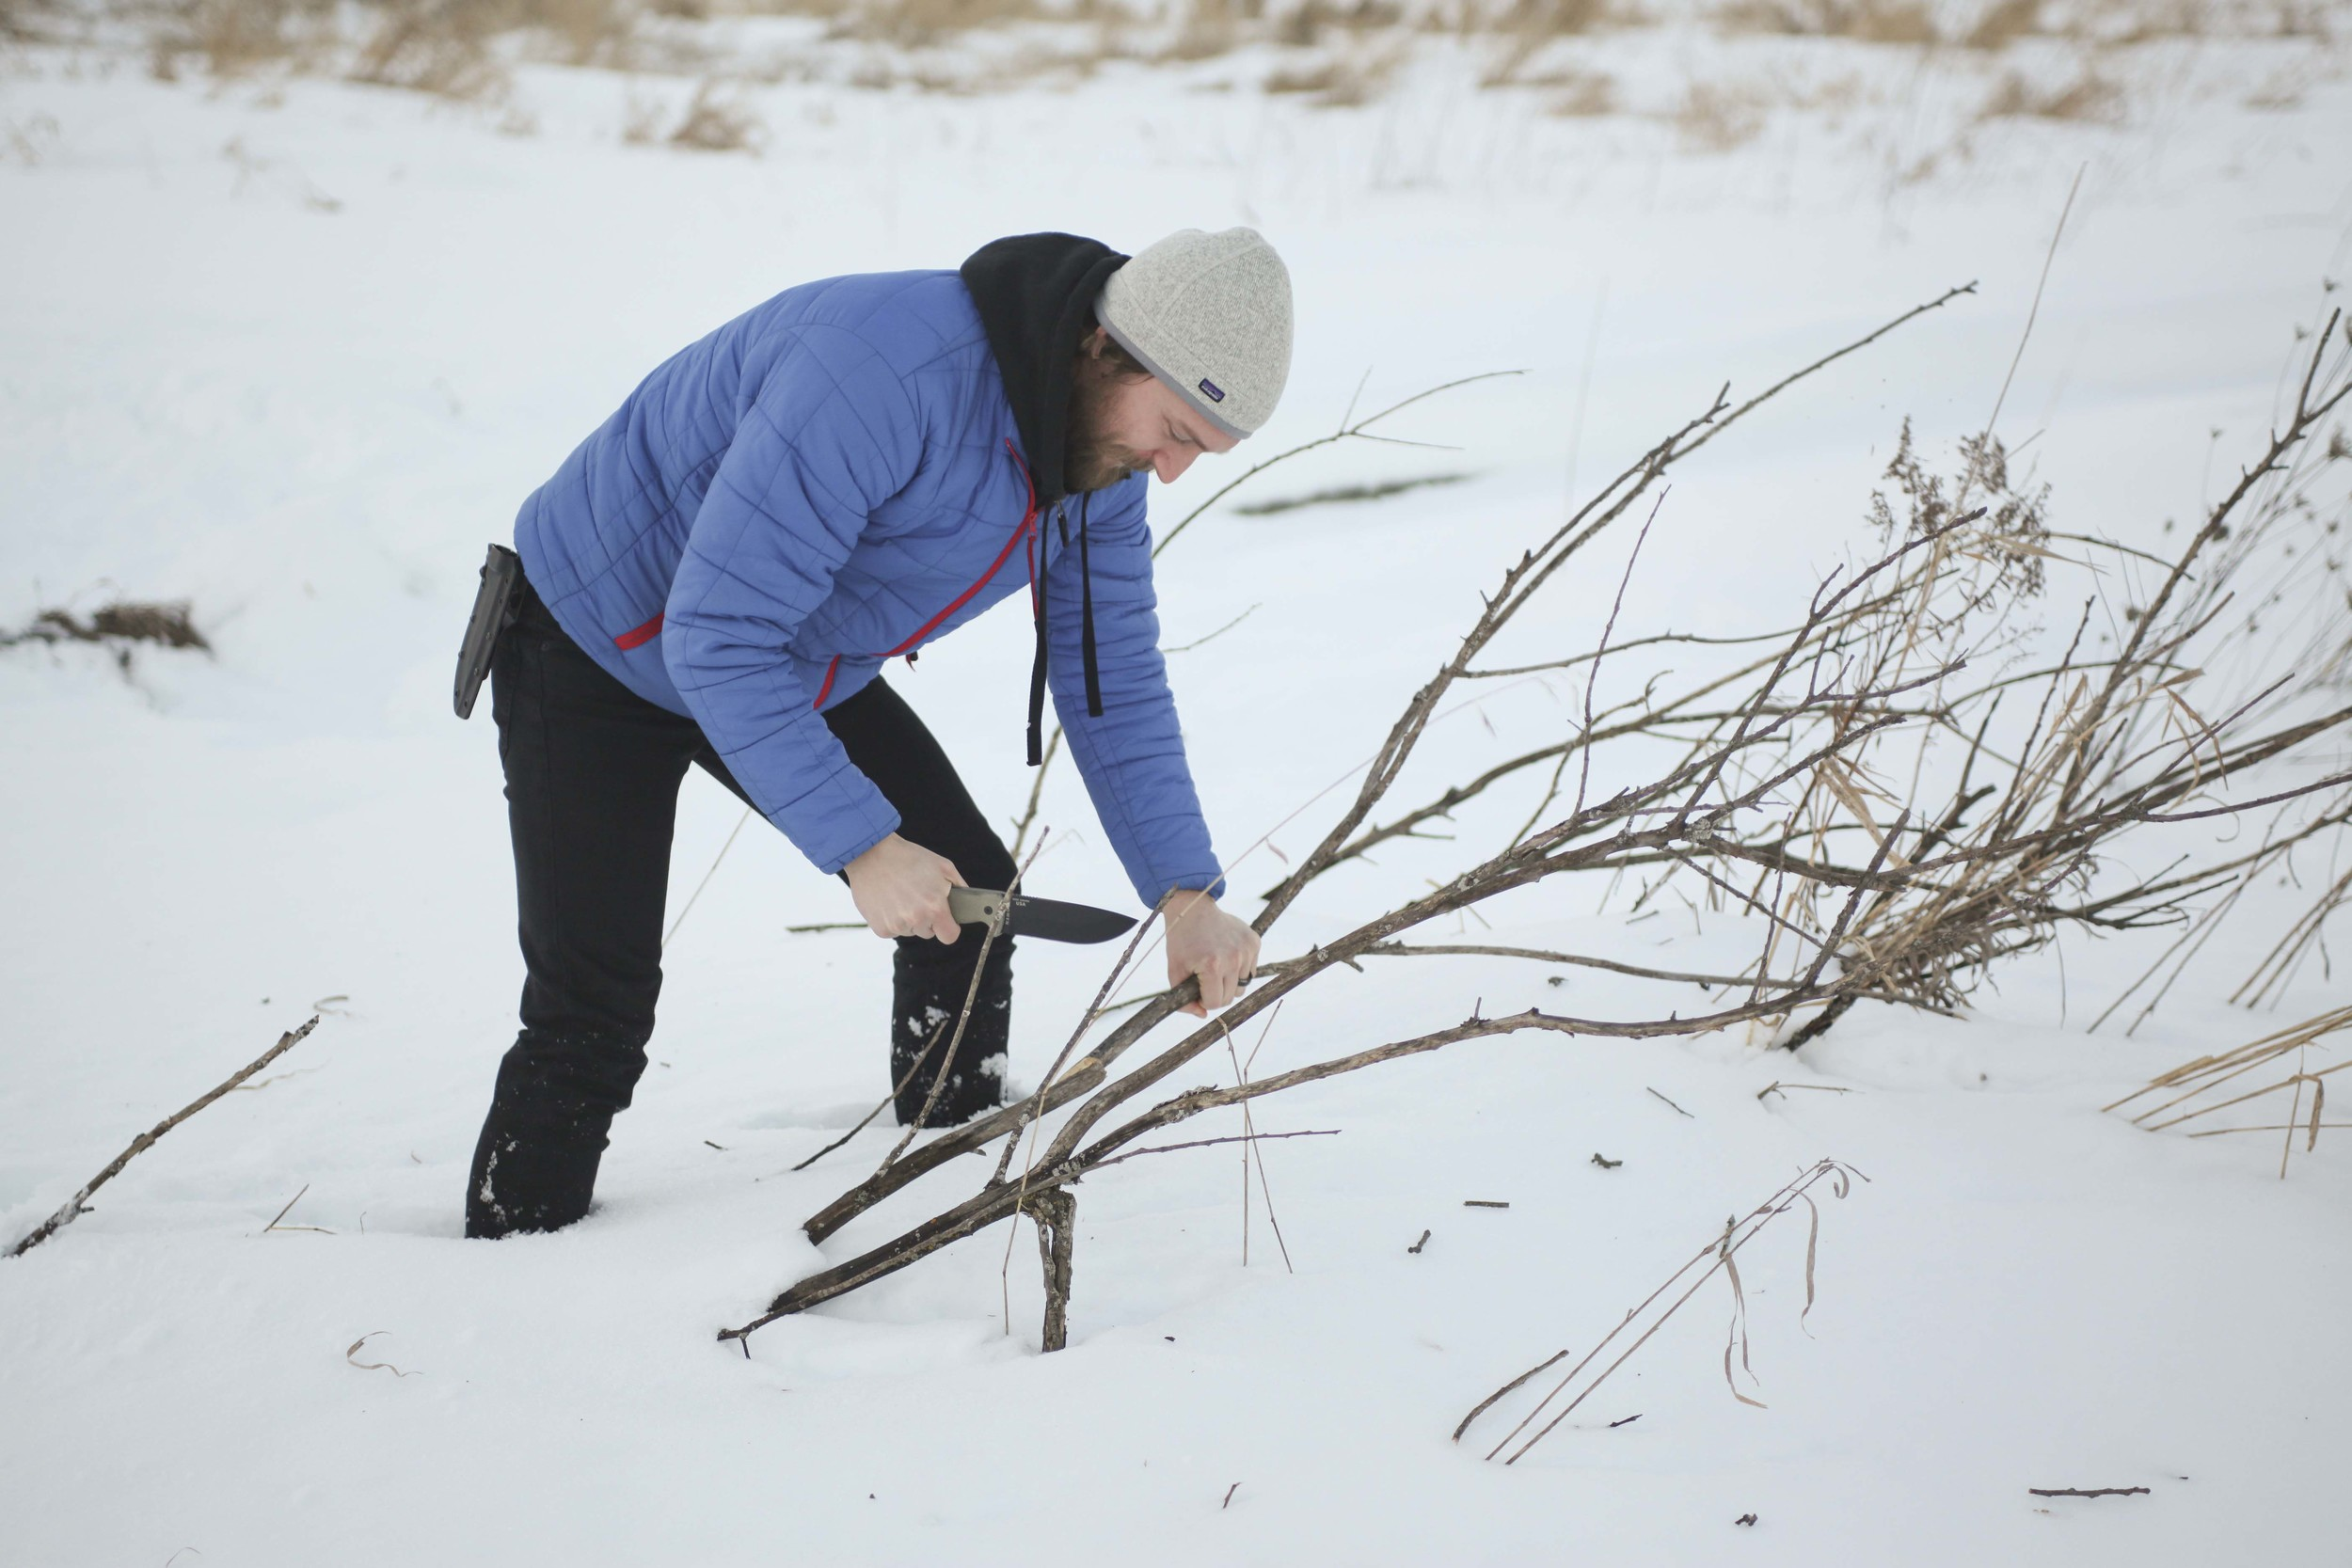 And here is Ryan, chopping kindling.